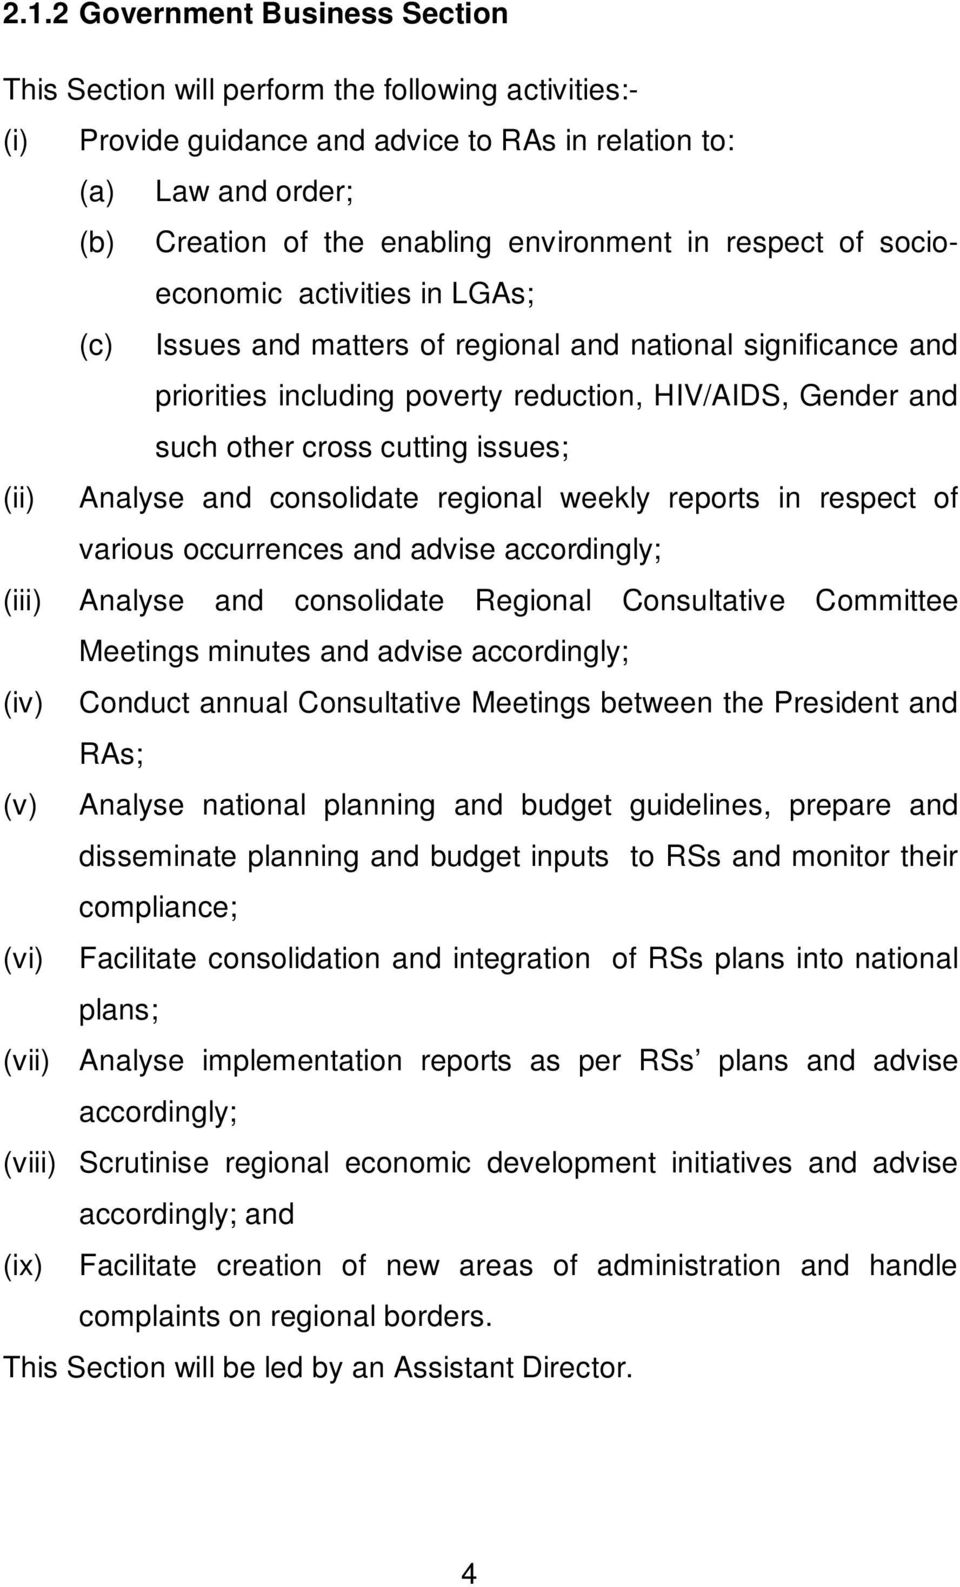 cross cutting issues; (ii) Analyse and consolidate regional weekly reports in respect of various occurrences and advise accordingly; (iii) Analyse and consolidate Regional Consultative Committee